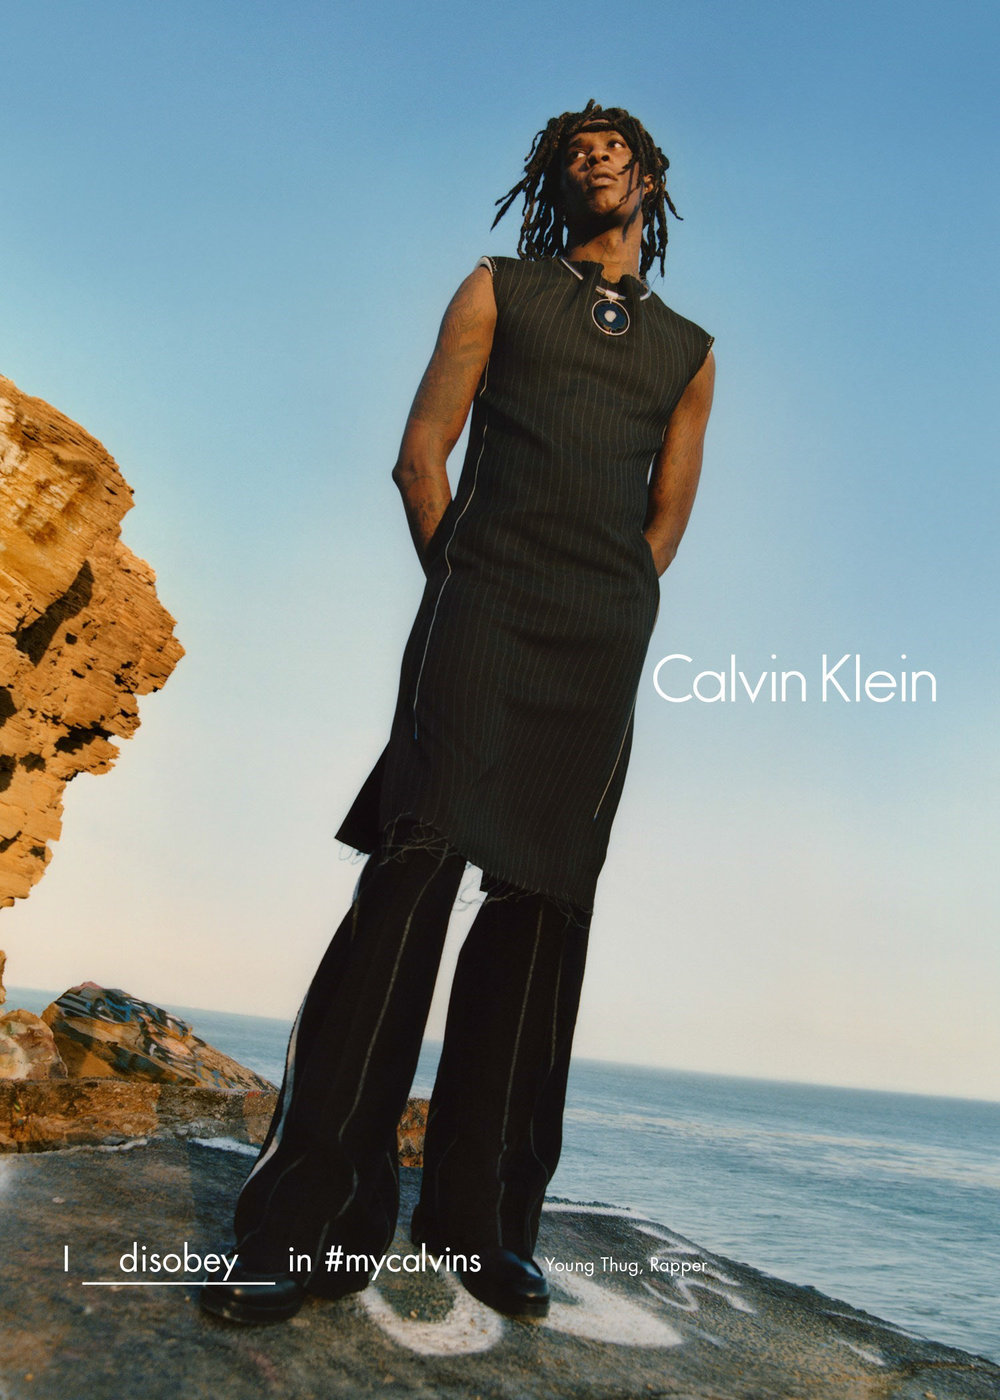 so-it-goes-calvin-klein-aw16-campaign-14.jpg